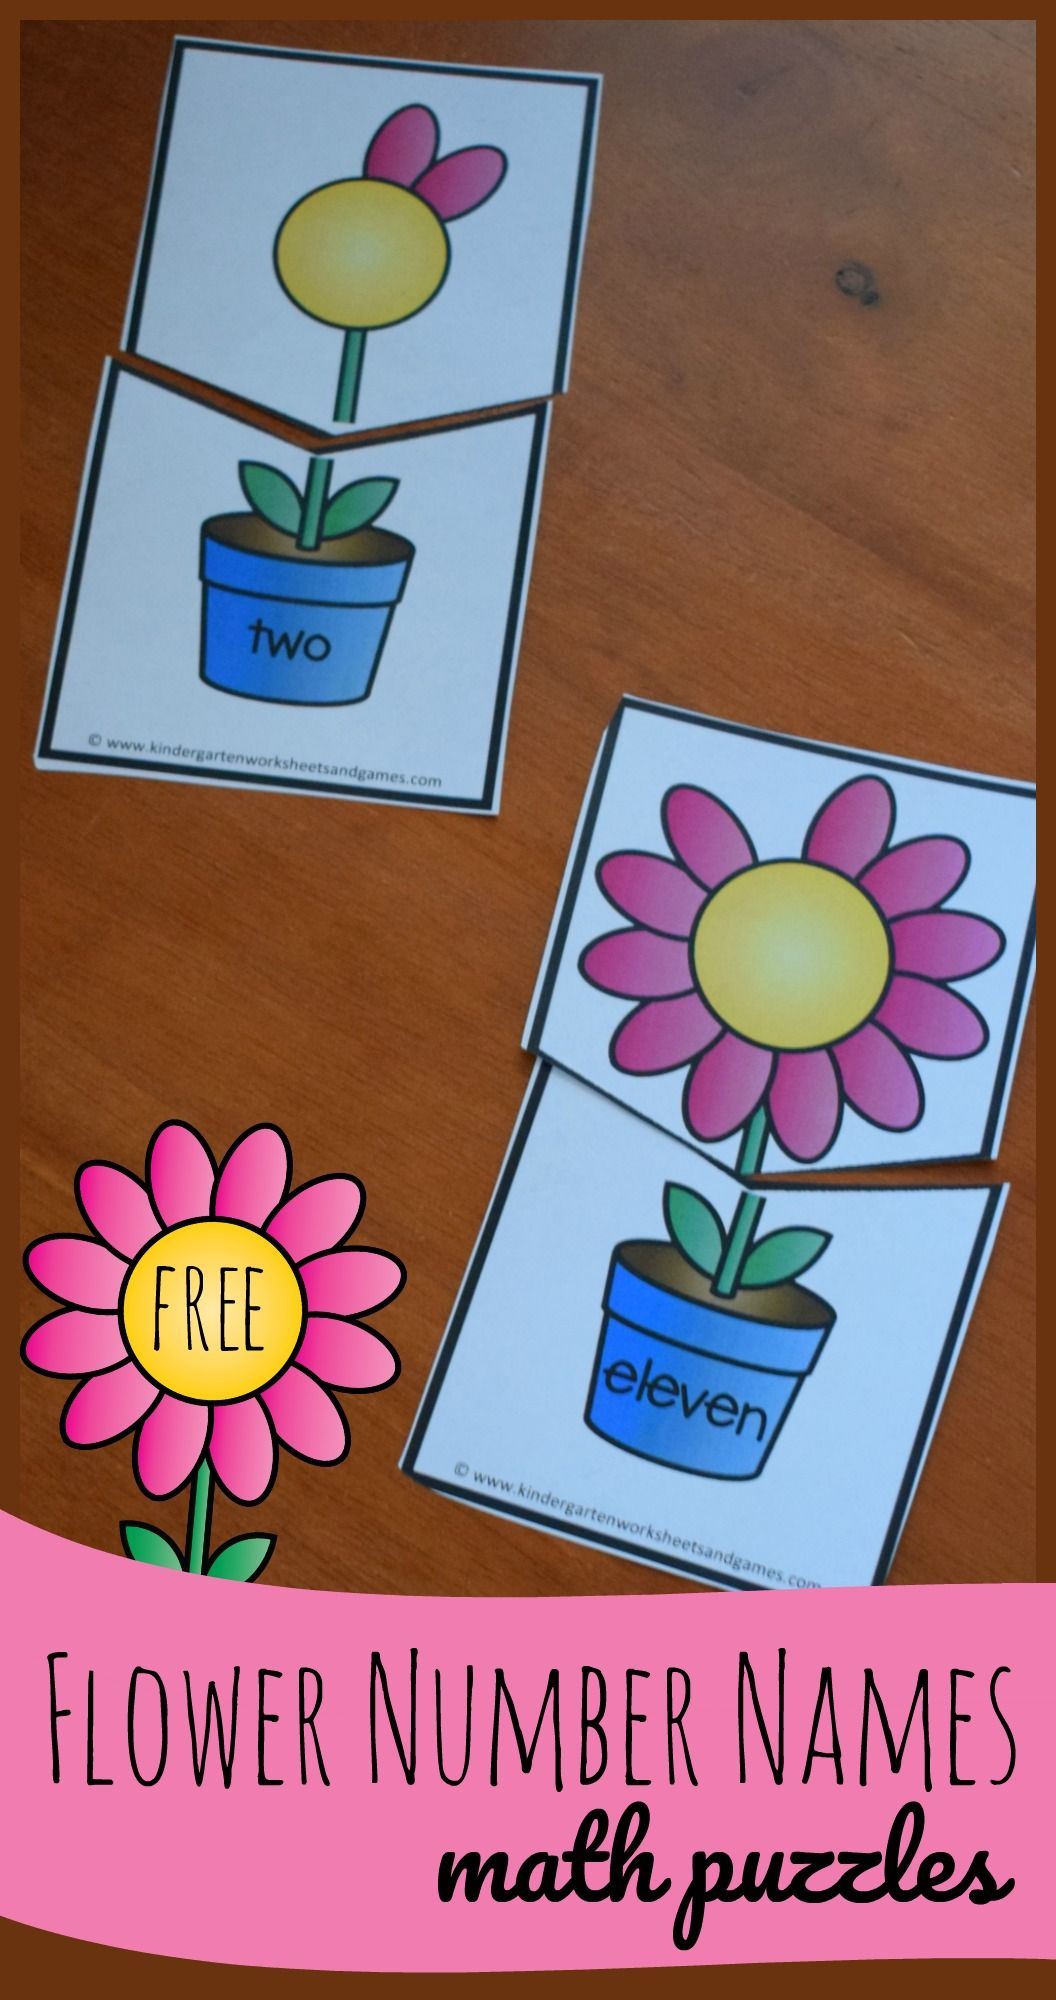 Free Flower Number Names